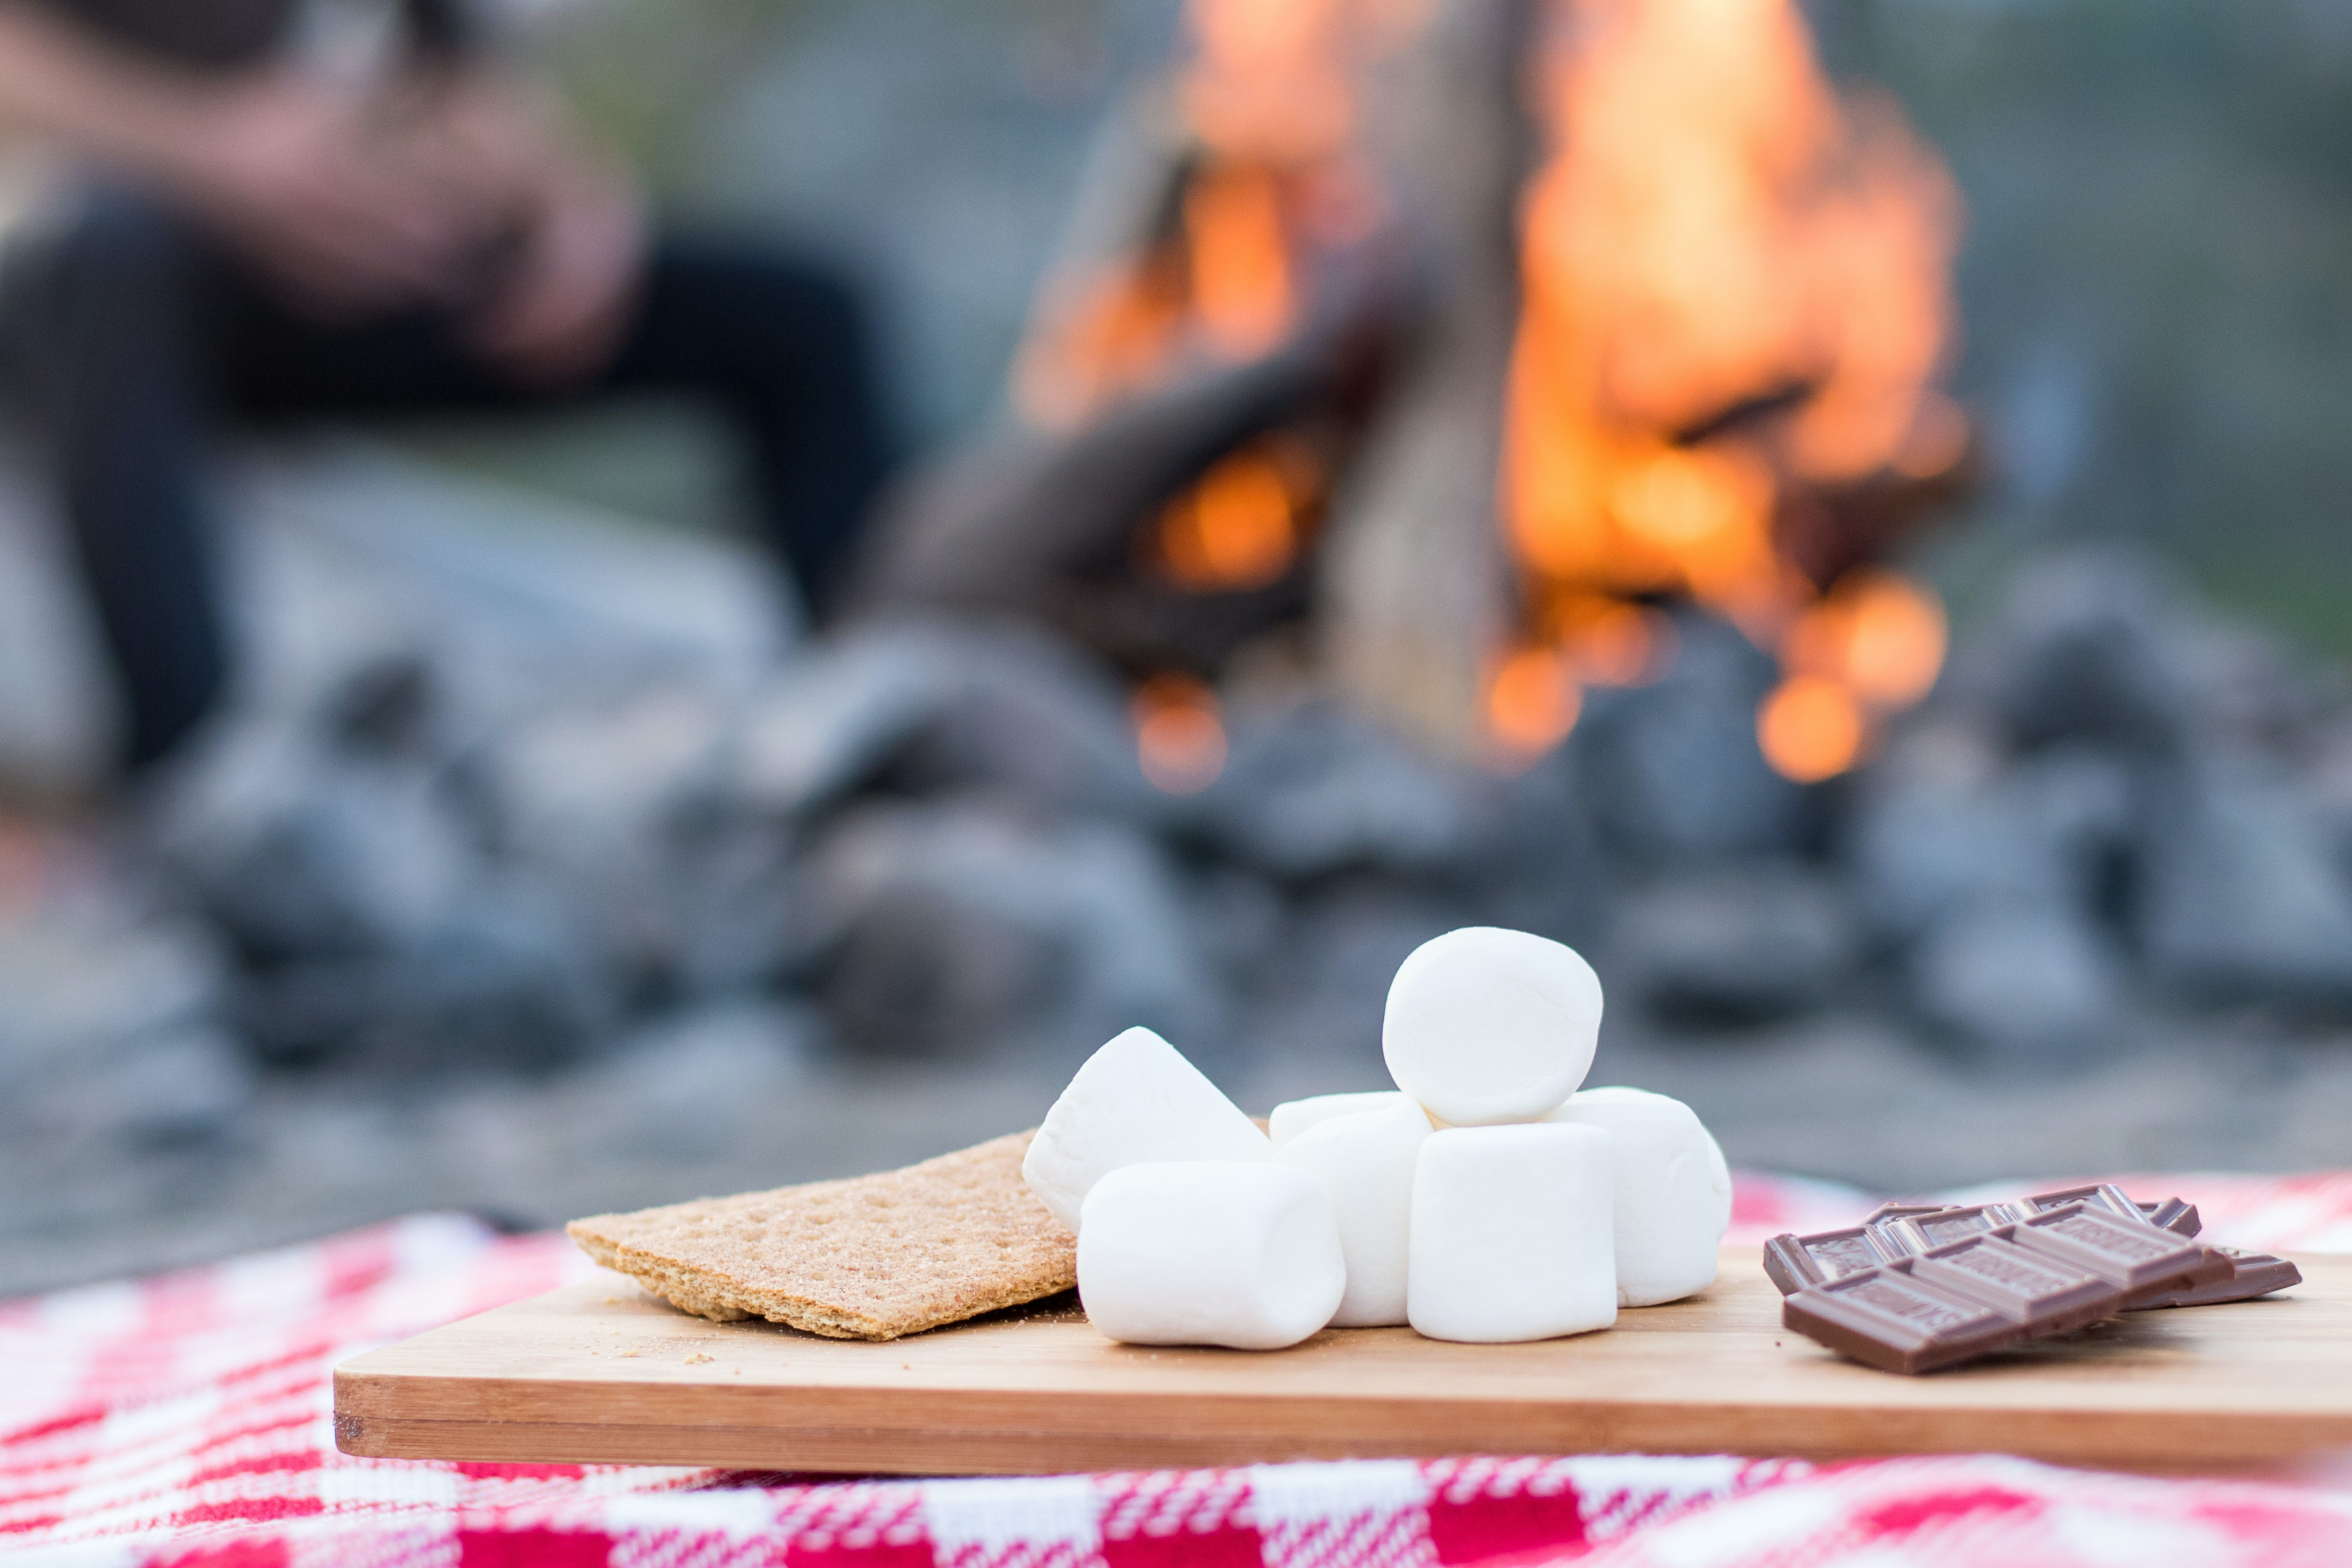 S'mores Ideas, Picnic Must-haves, and more!